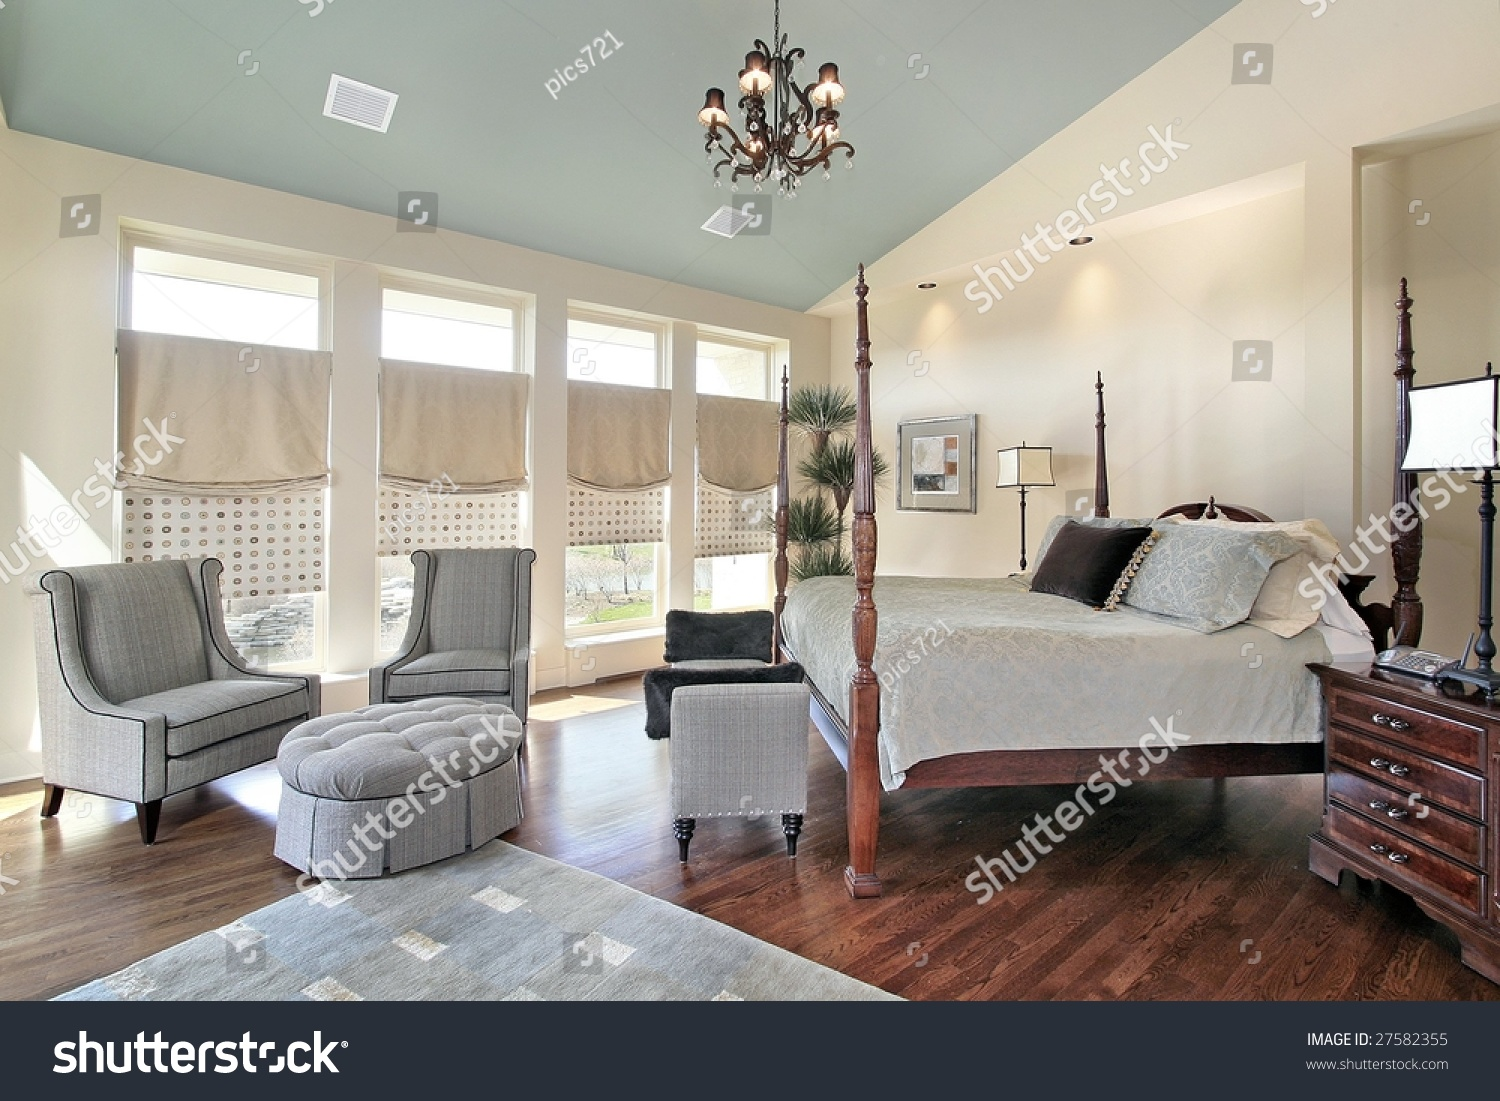 Master Bedroom With Sofa And Ottoman Stock Photo 27582355 Shutterstock